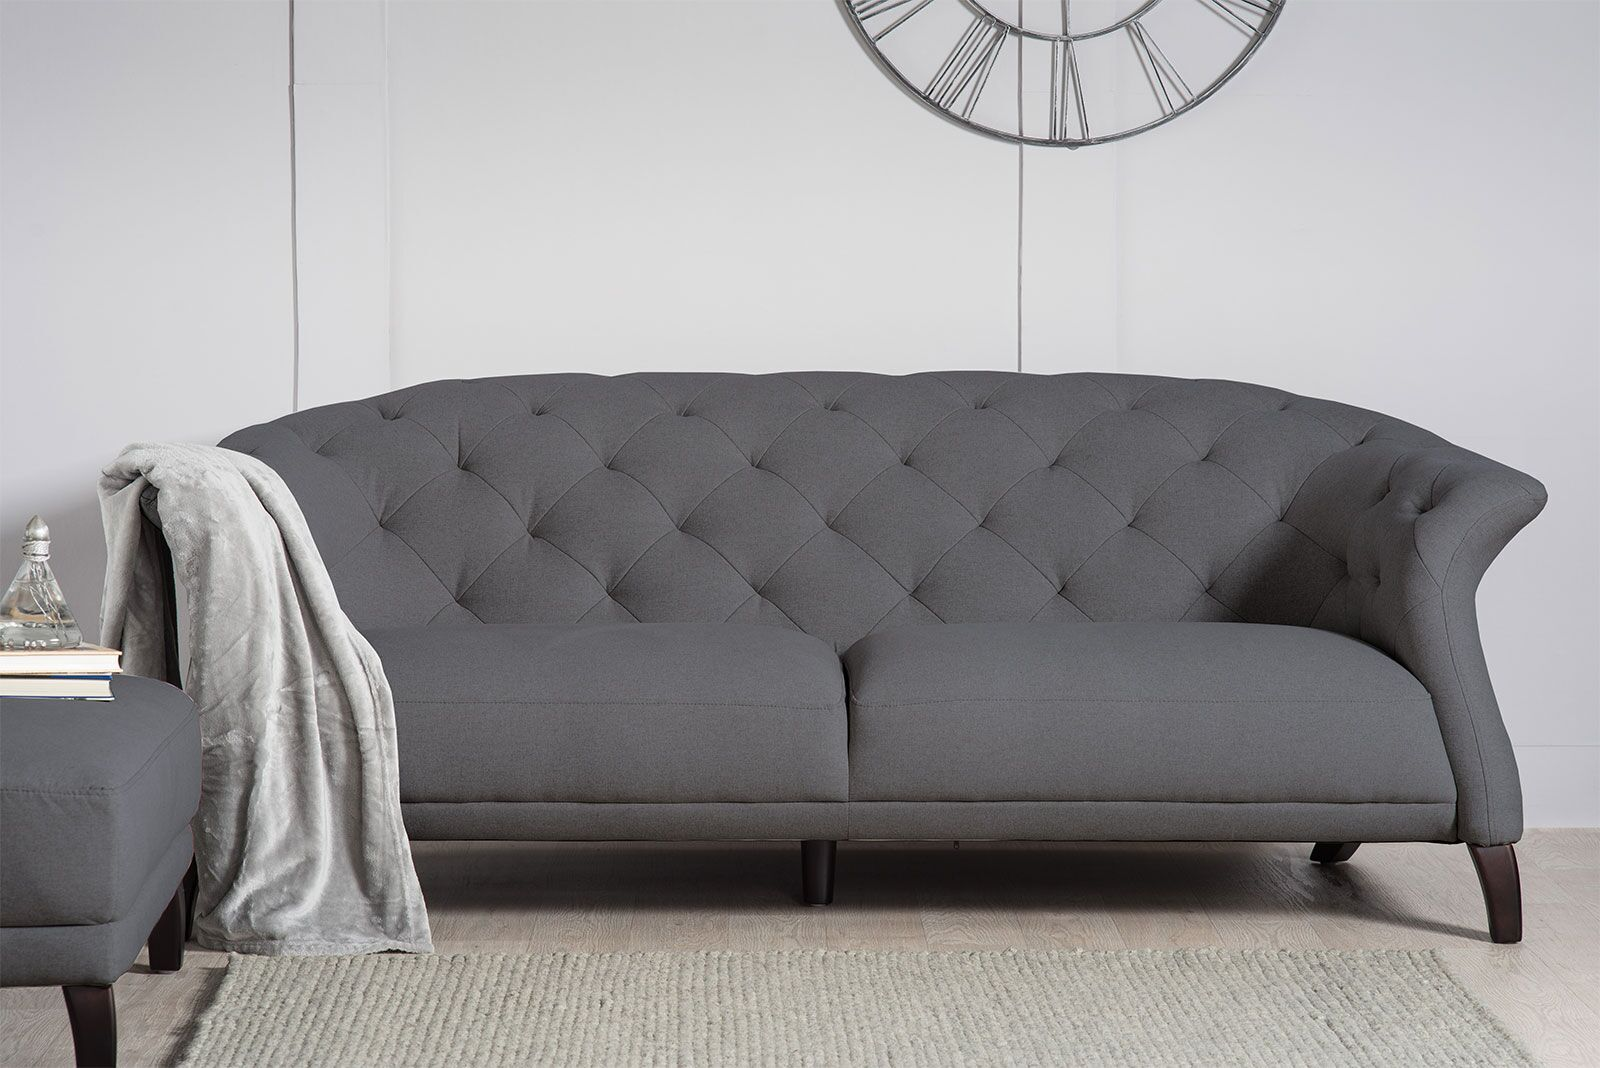 3 Seater Modern Chesterfield Sofa